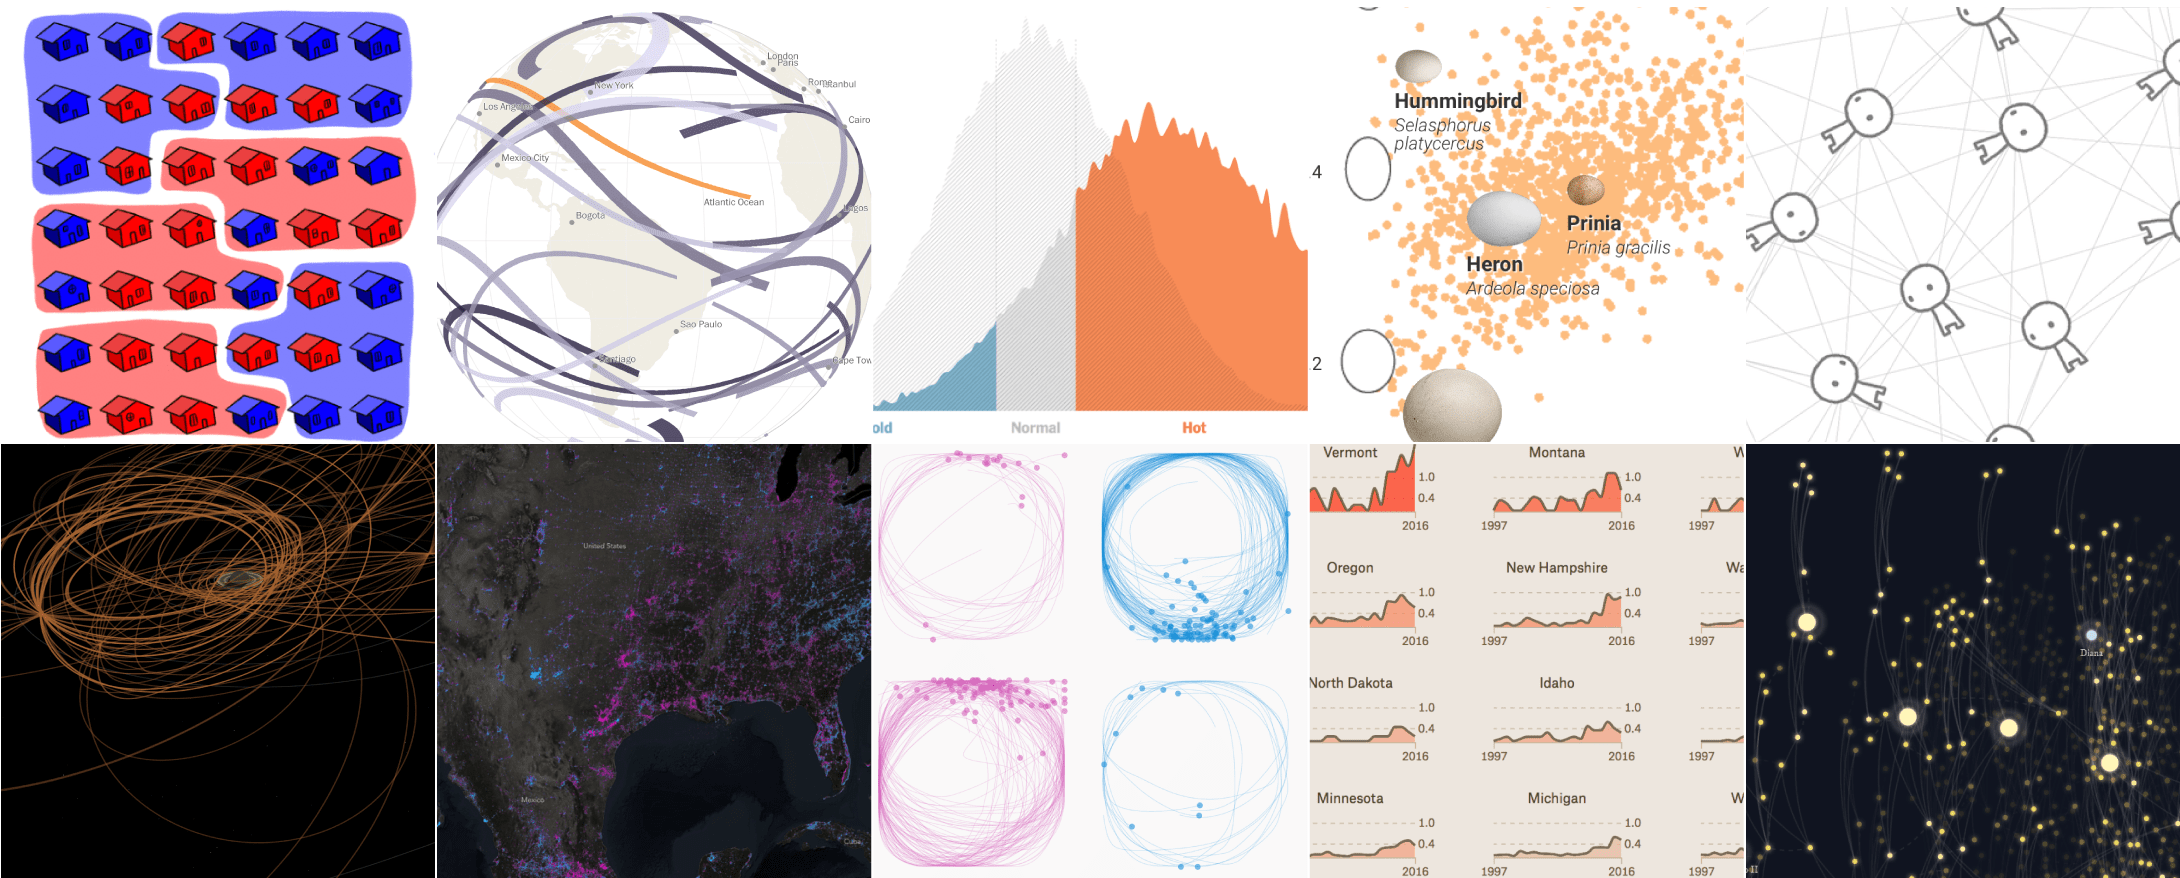 10 Best Data Visualization Projects of 2017